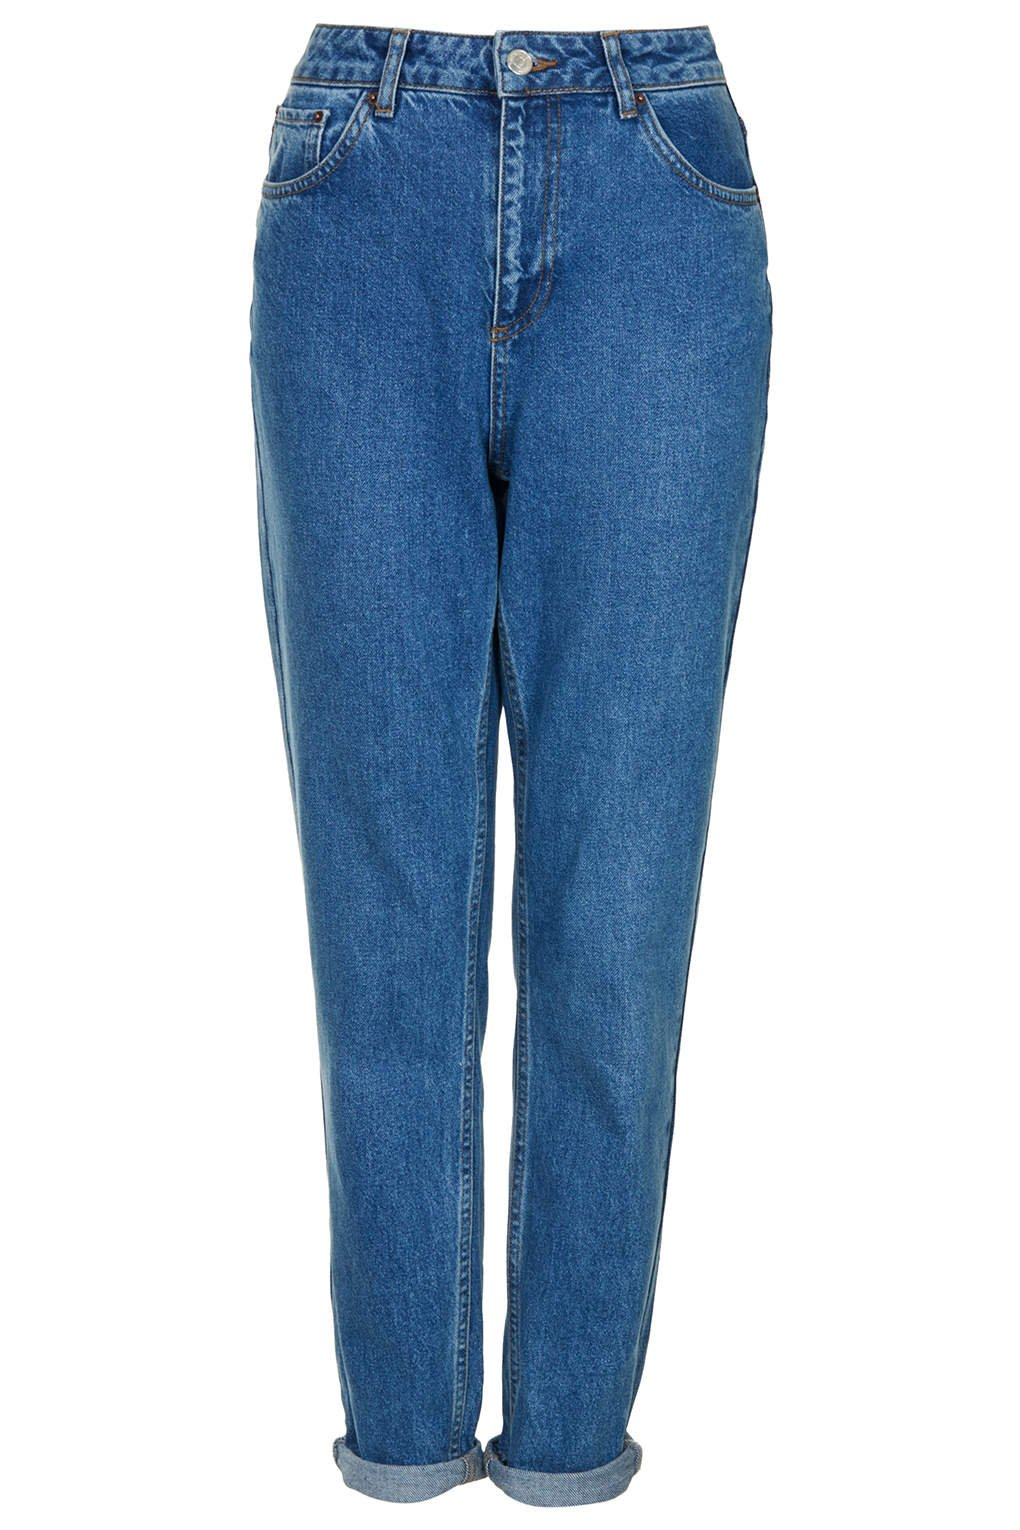 In the category Men Denim Pants at YOOX you can find pieces from the best brands. Shop online: easy, quick returns and secure payment! UNITED STATES Customer Care. Register Login. MYOOX Logout. Can we help you? Go to the CUSTOMER CARE area Denim pants $